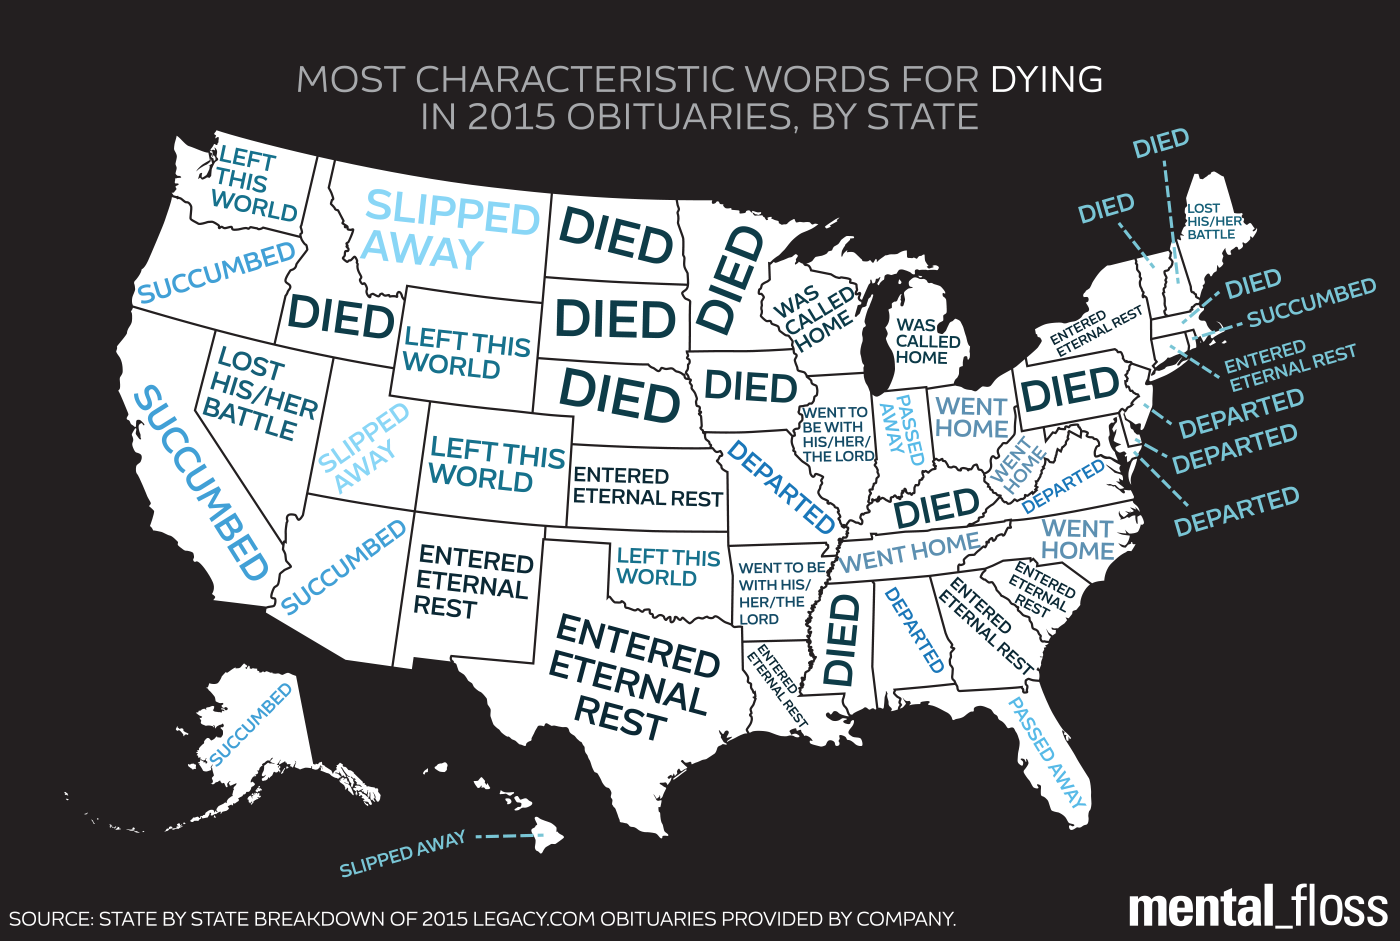 Most characteristic words for dying in 2015 obituaries, by state